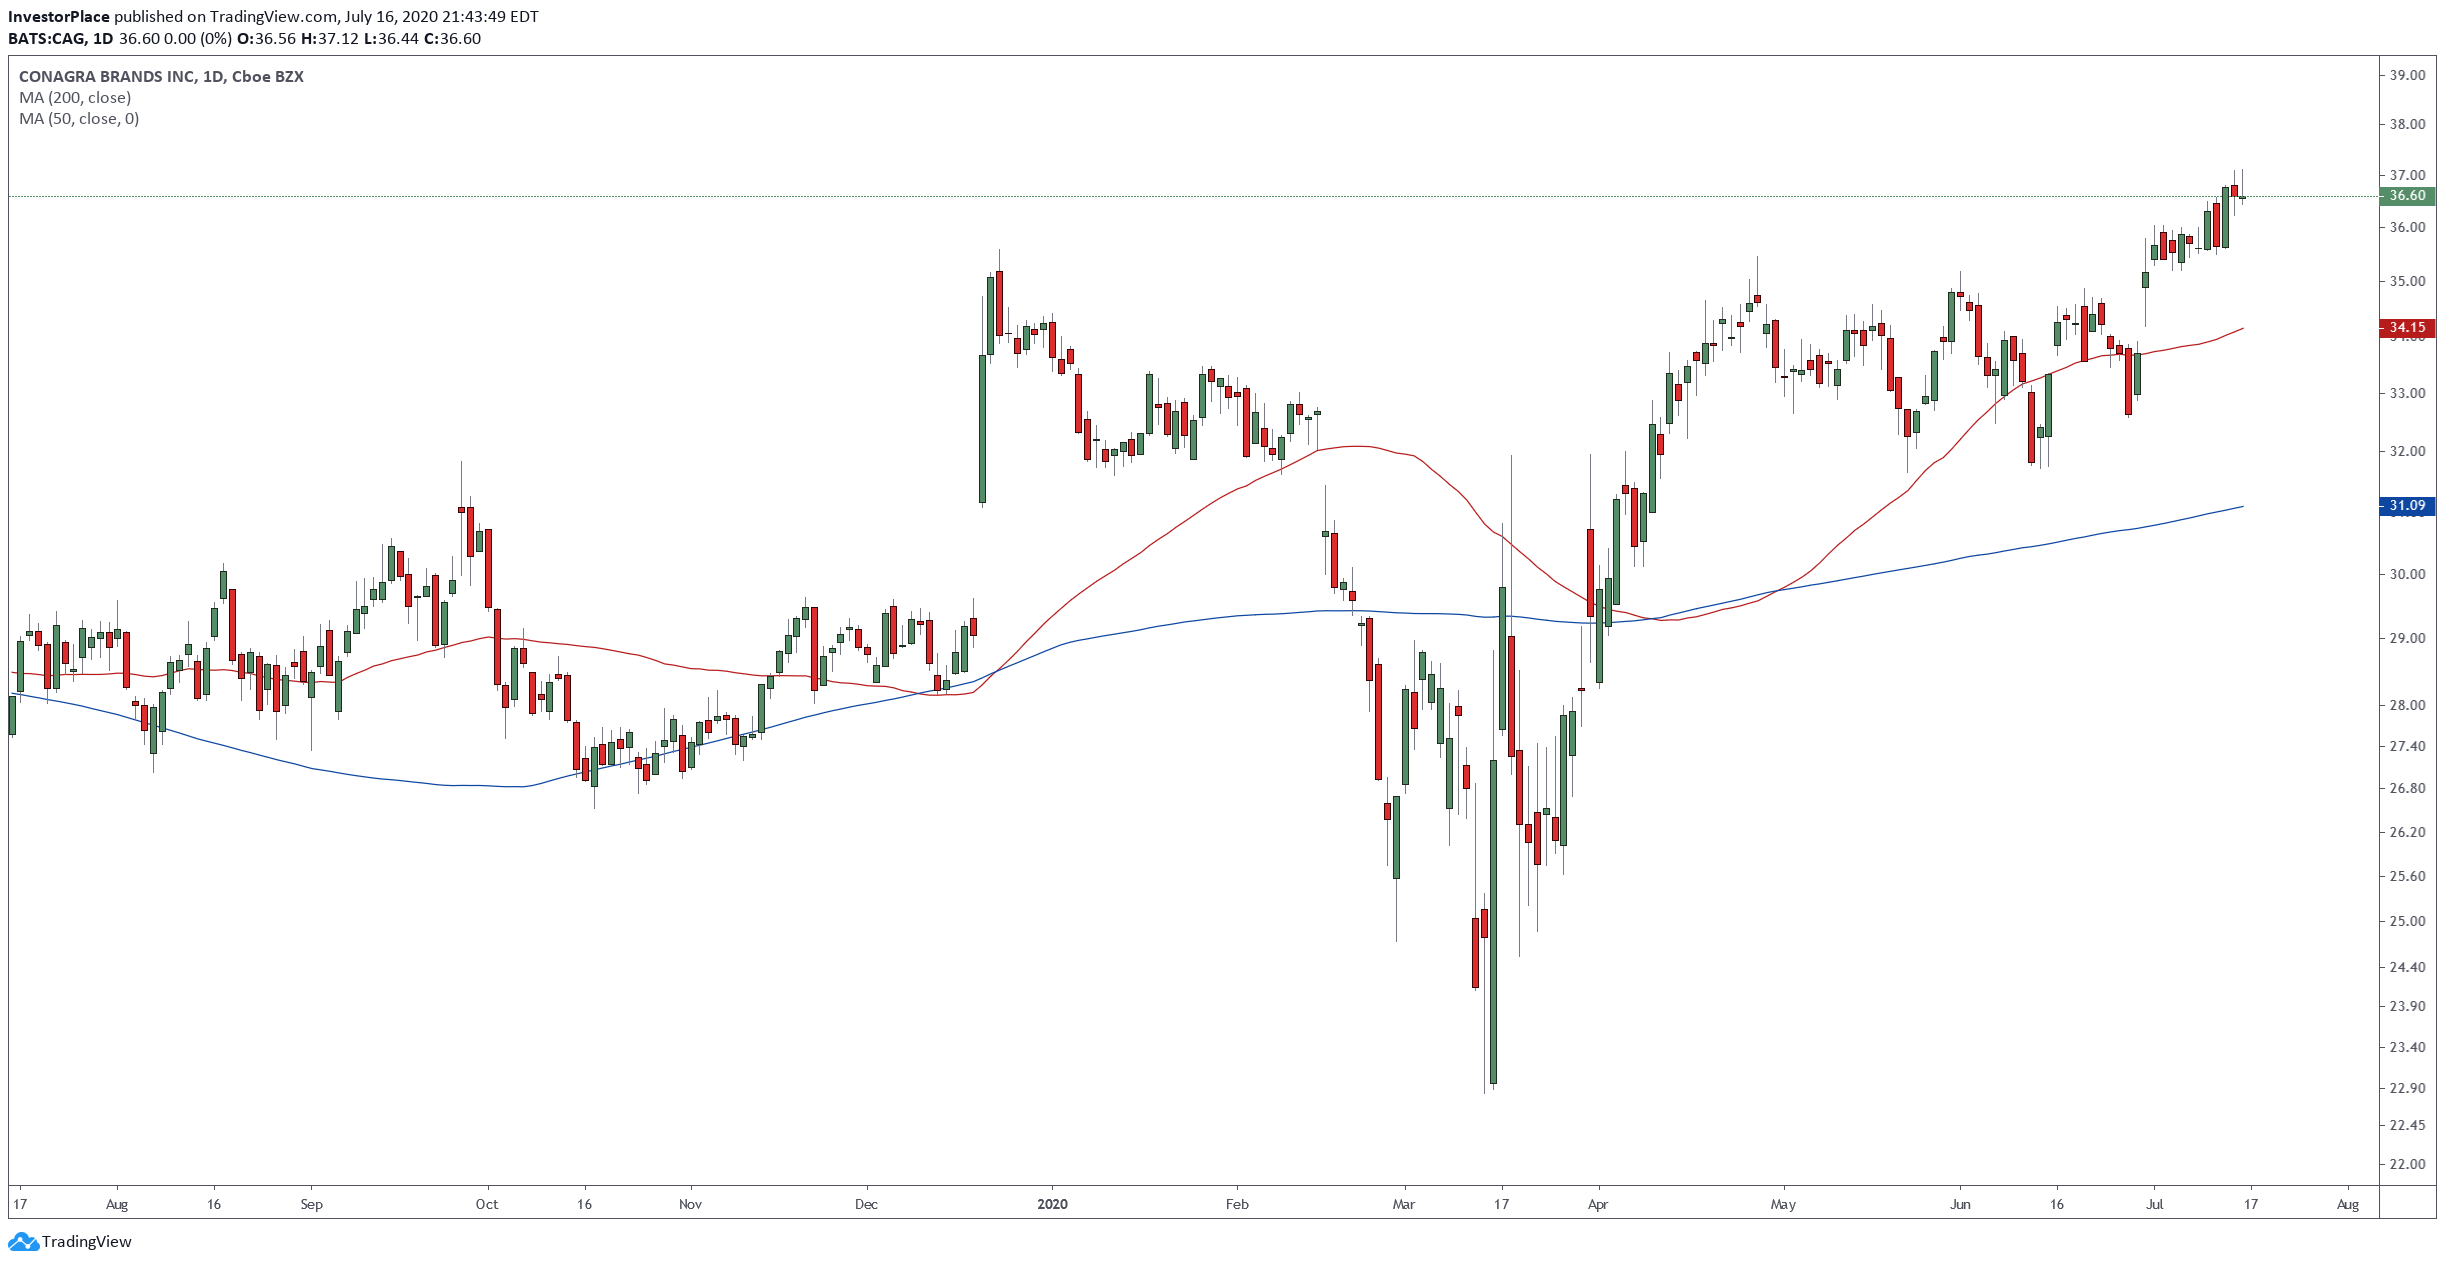 Conagra Brands, Inc. (CAG) Daily Chart